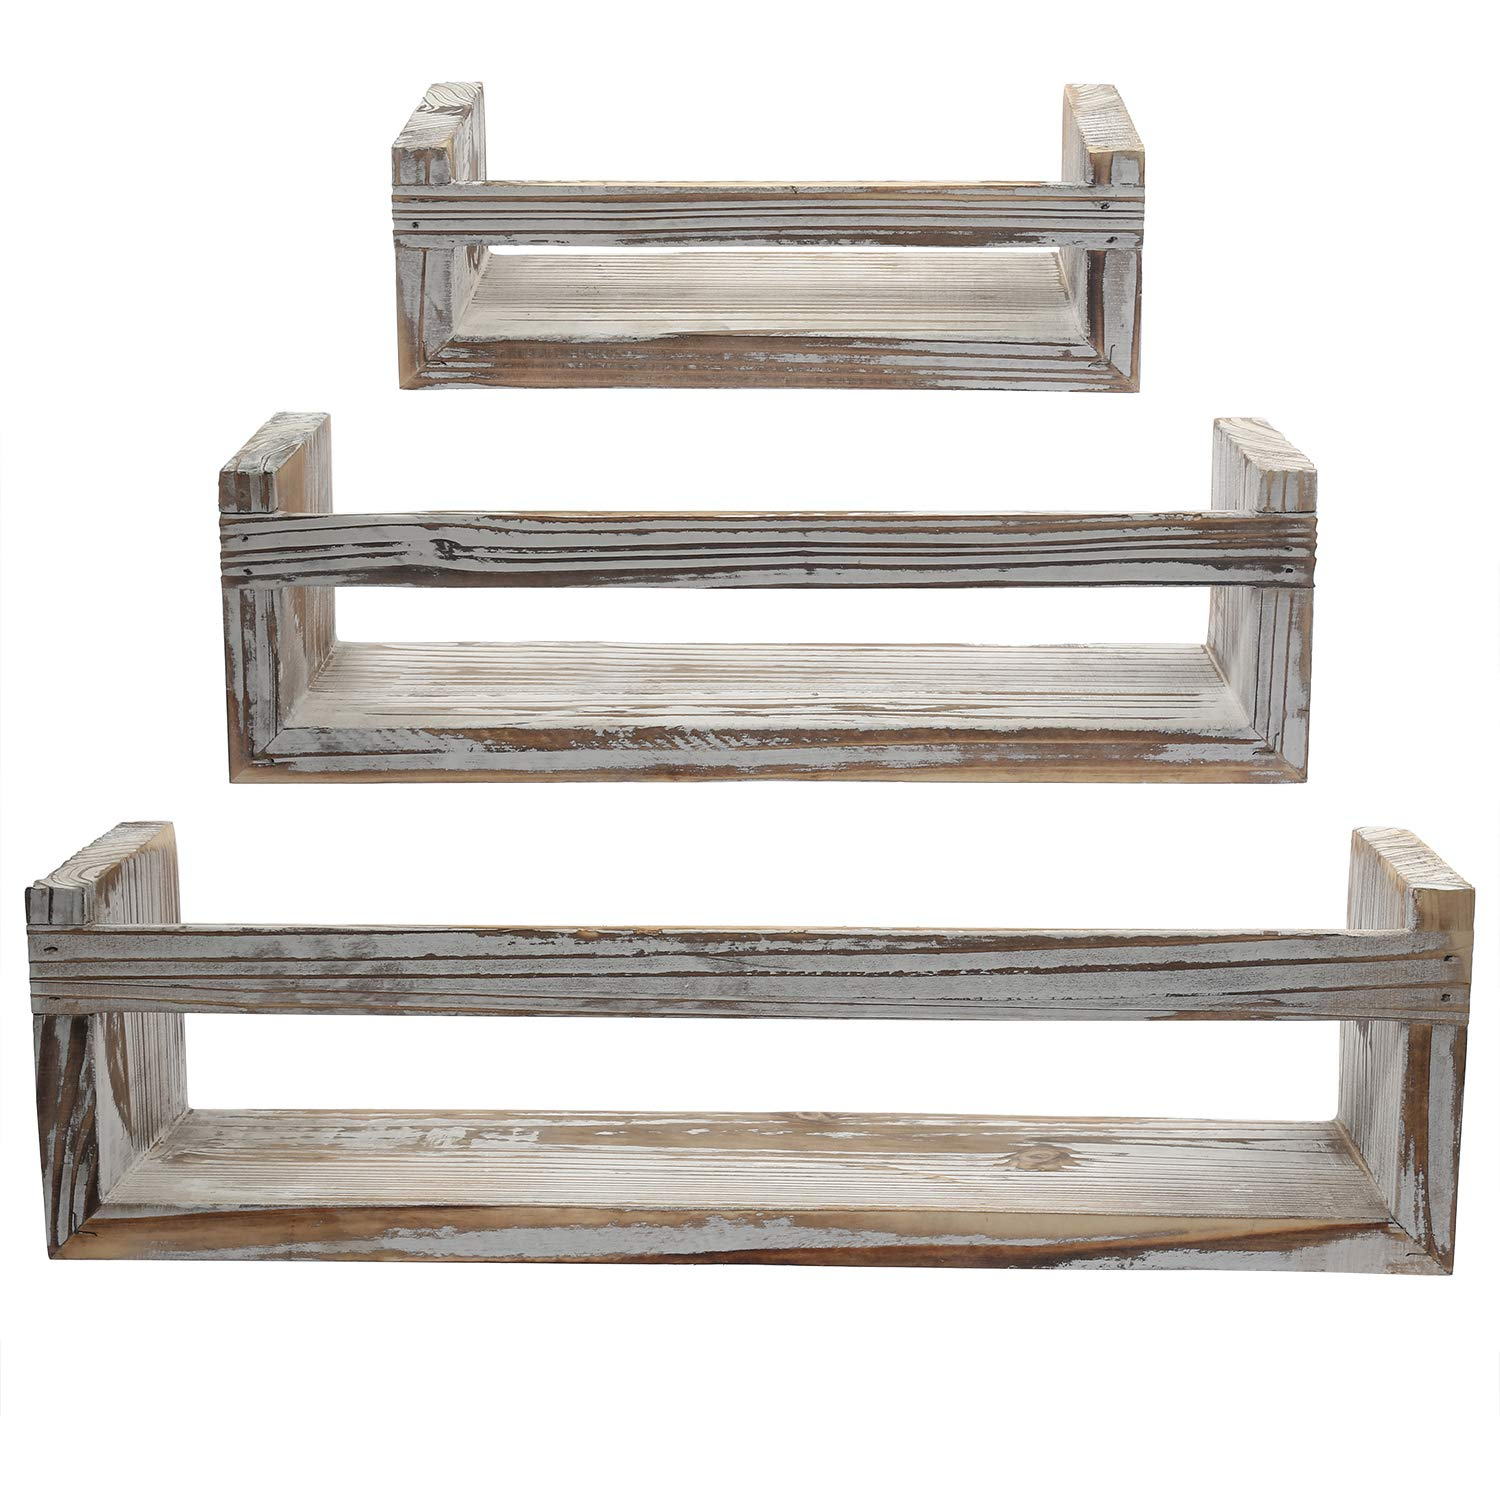 DOCMON Floating Shelves-Wall Shelf-Floating Shelf-Wall Shelves-Rustic Wall Mount Shelf for Bathroom Bedroom Living Room Kitchen Office and More